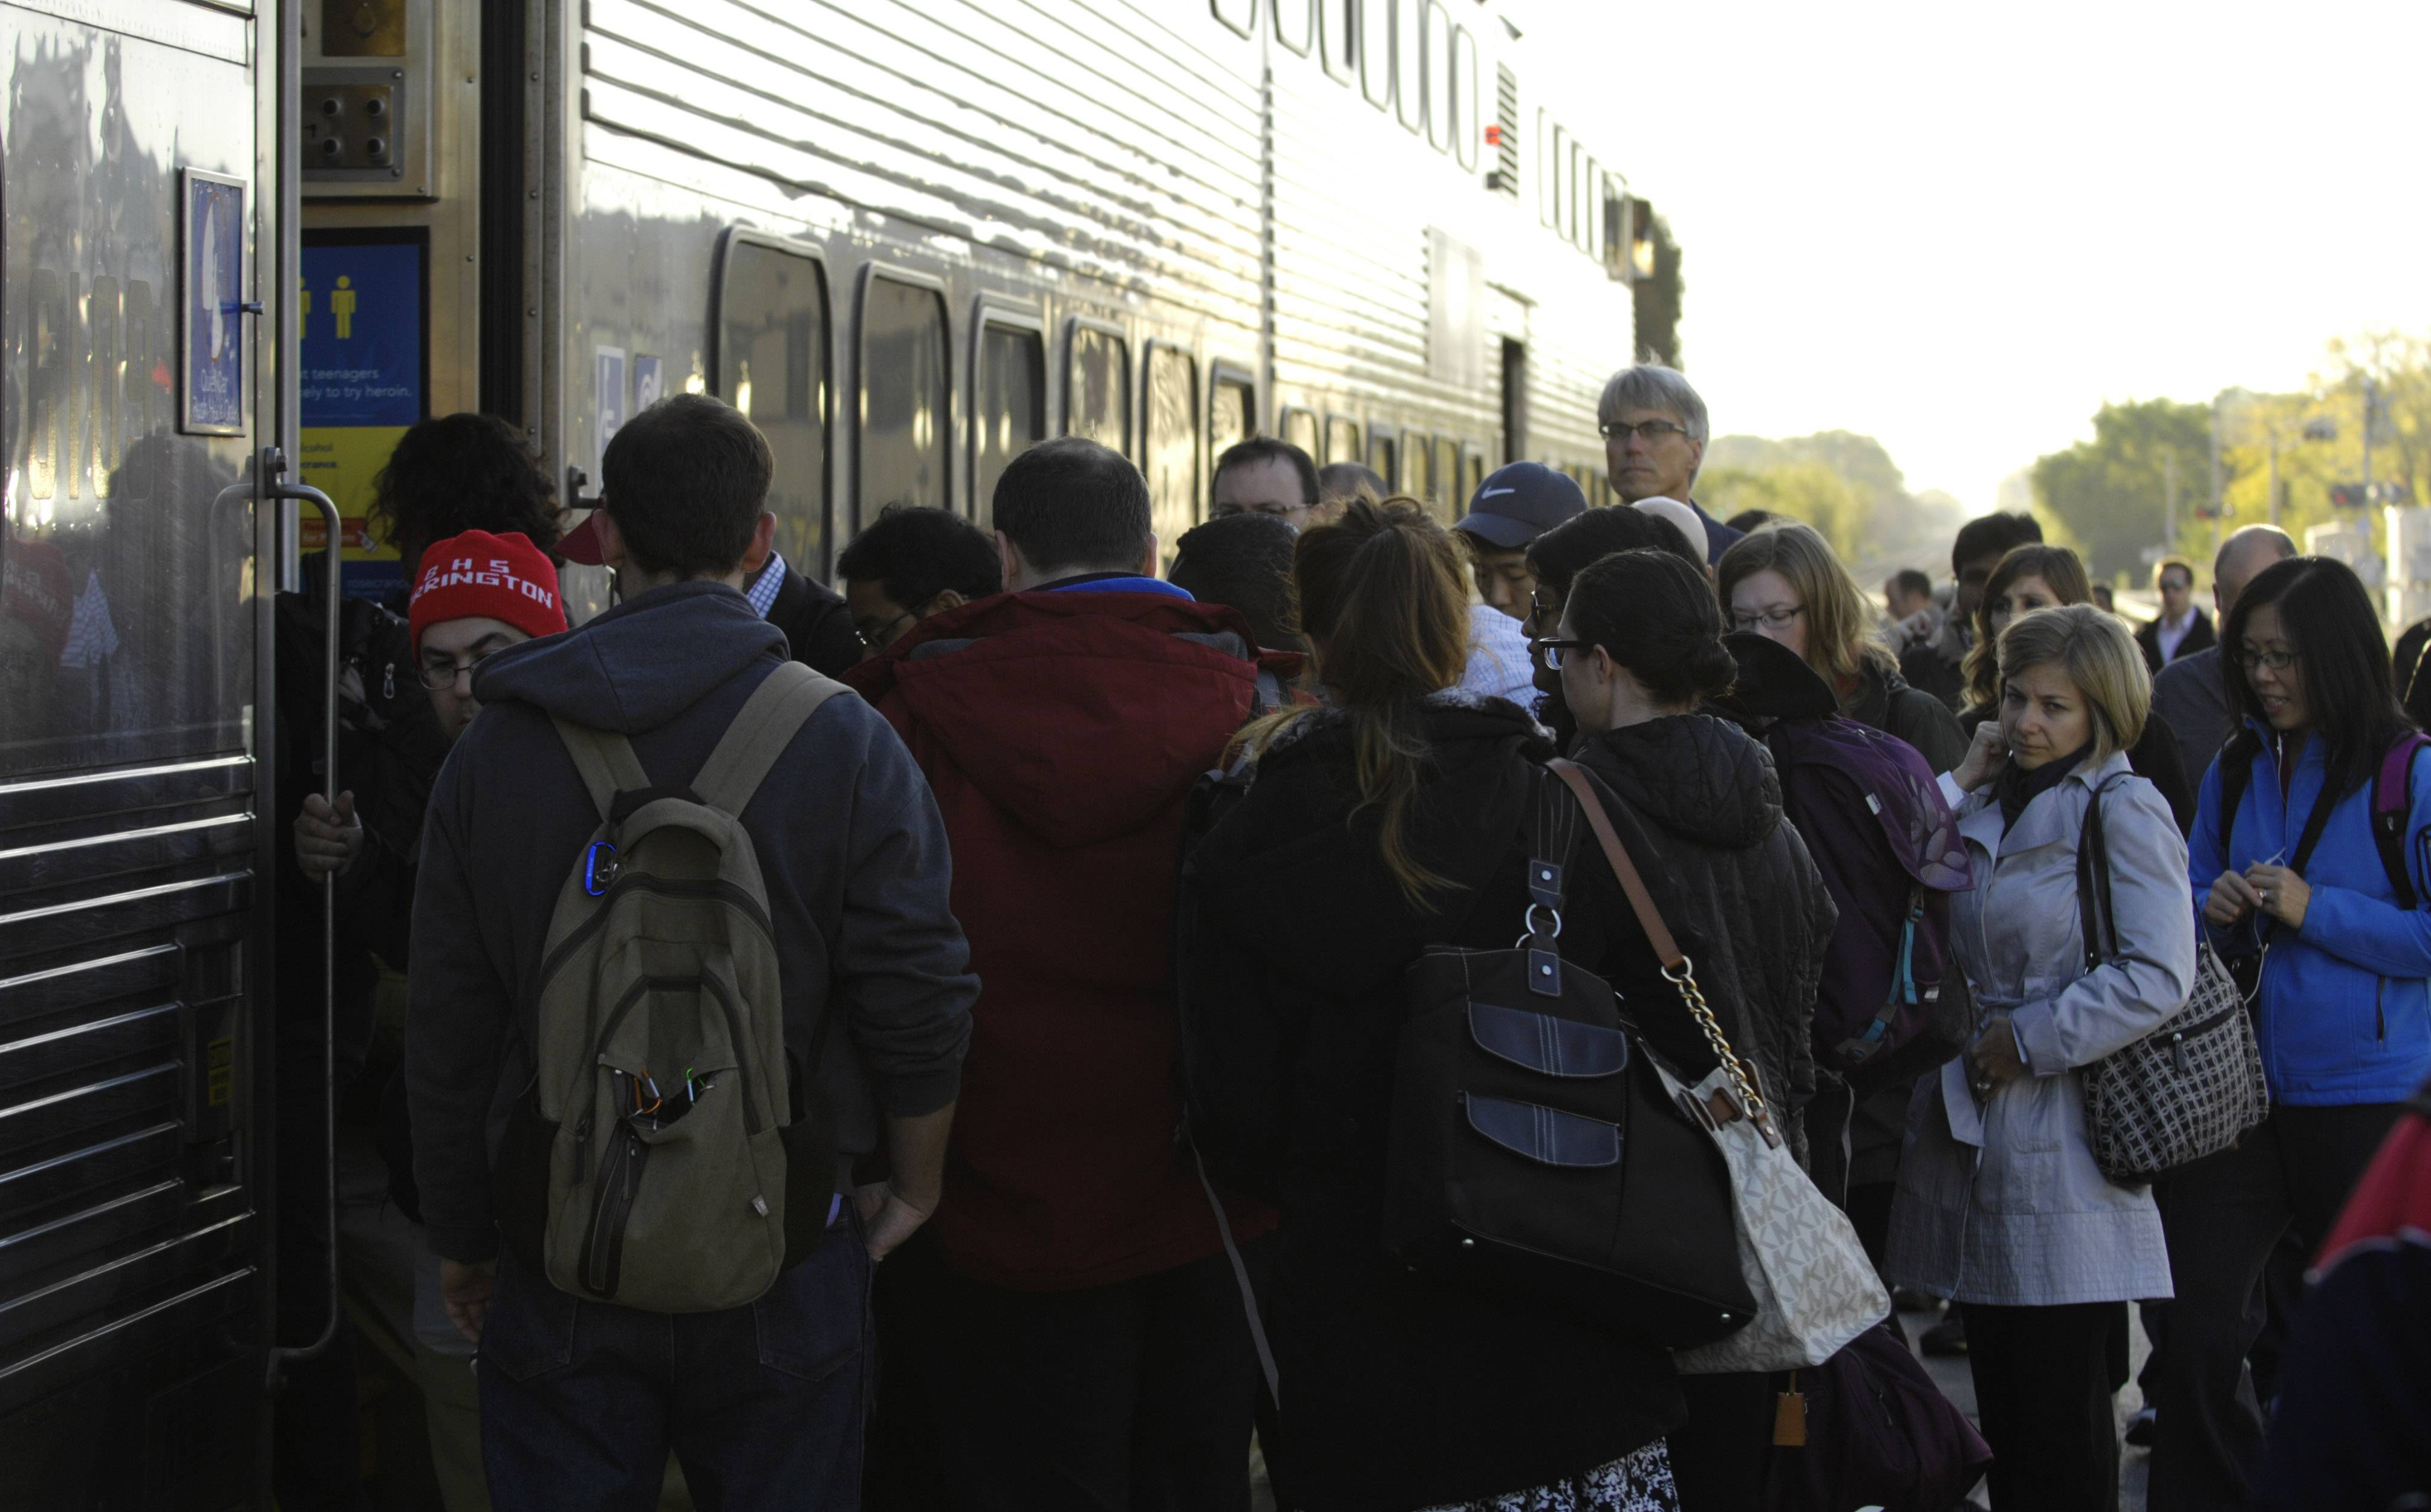 Metra eyes fare hike averaging 2 percent